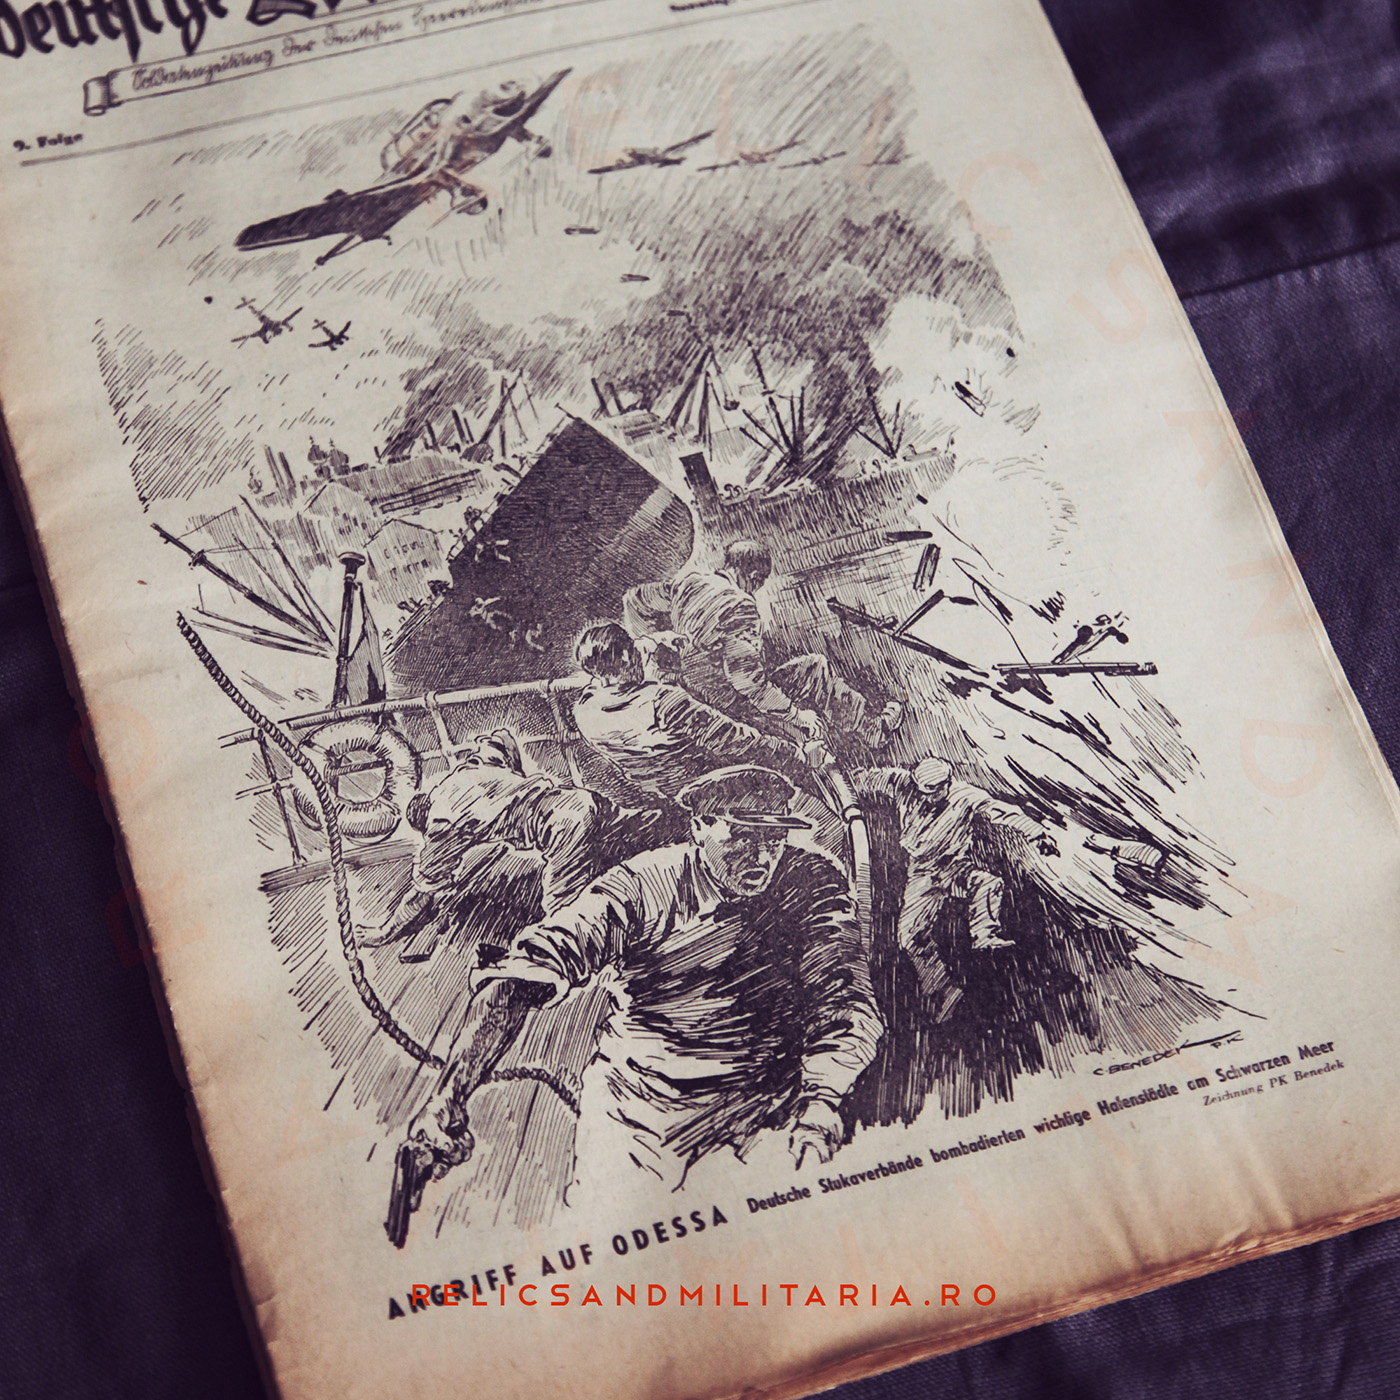 The German comrade. Soldier's newspaper of the German Army mission in Romania